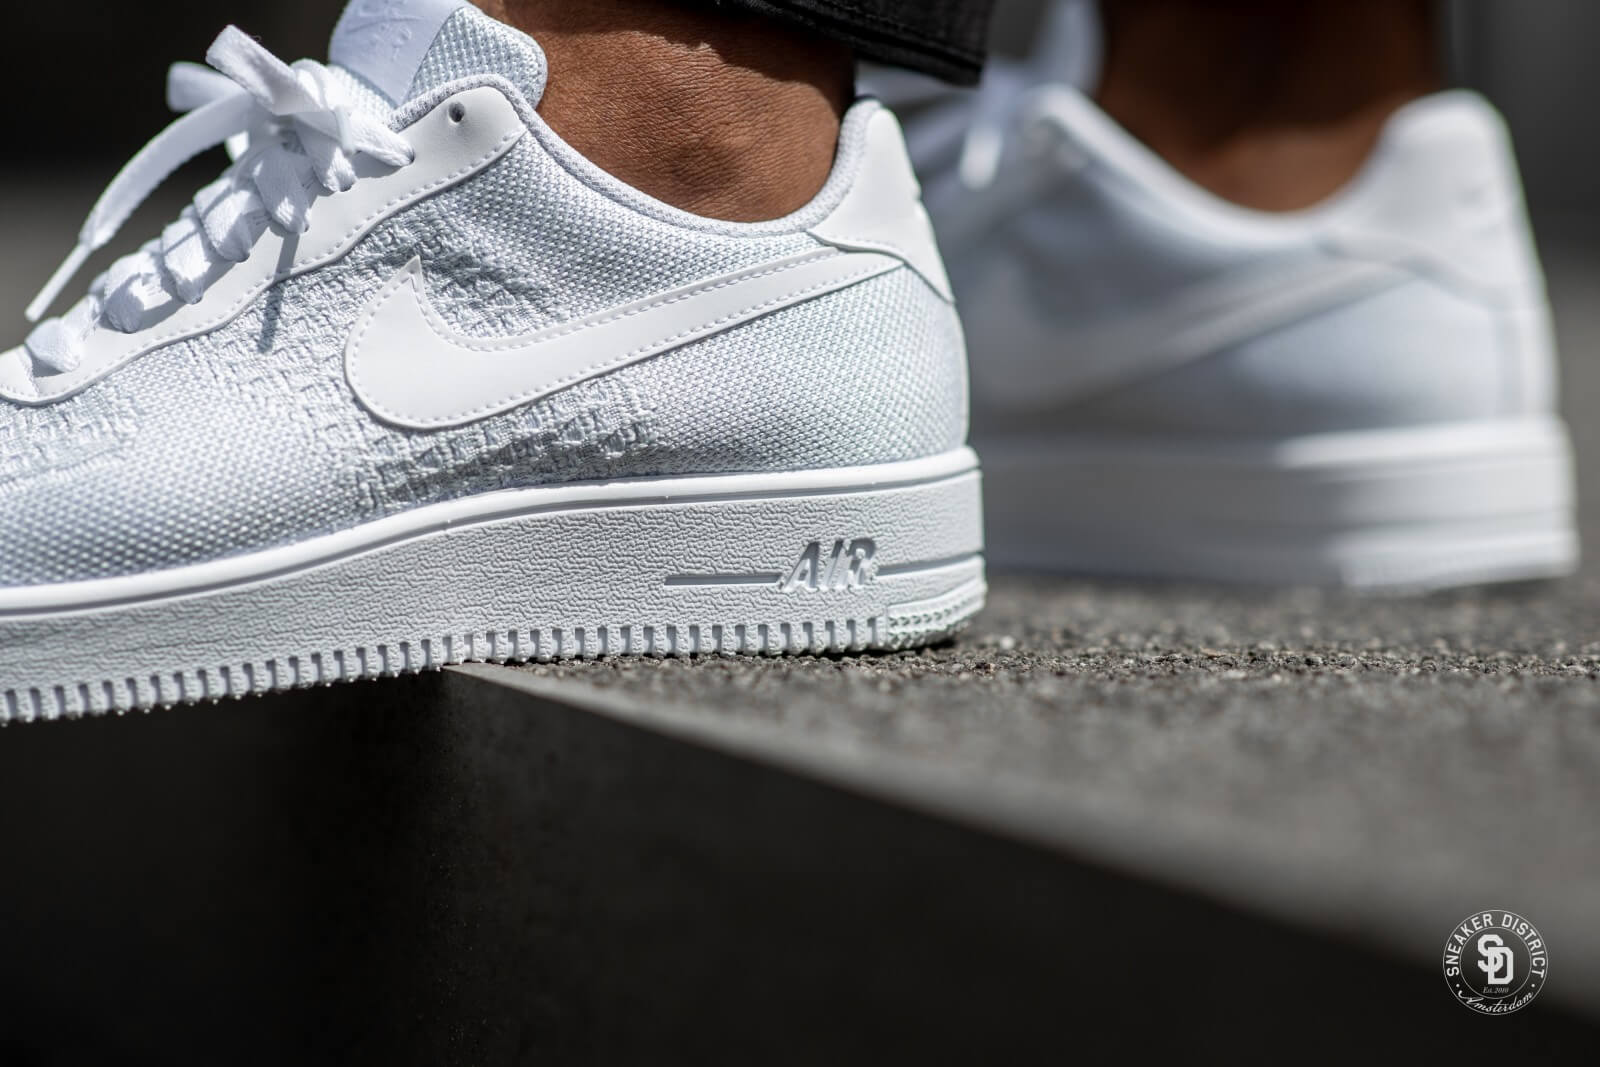 Nike Air Force 1 Flyknit 2.0 White/Pure Platinum - AV3042-100